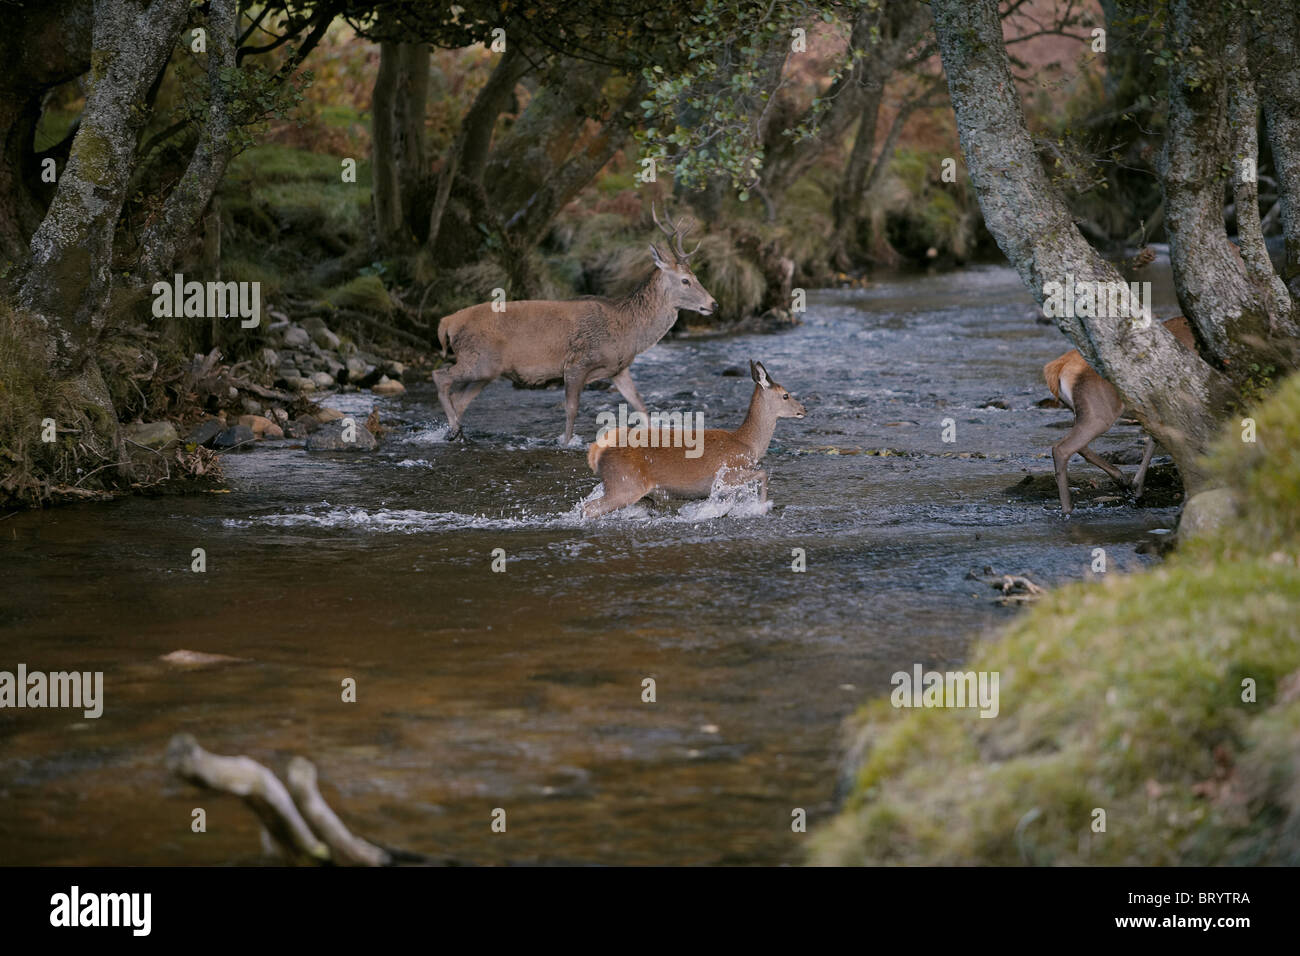 red-deer-cervus-elaphus-crossing-a-strea